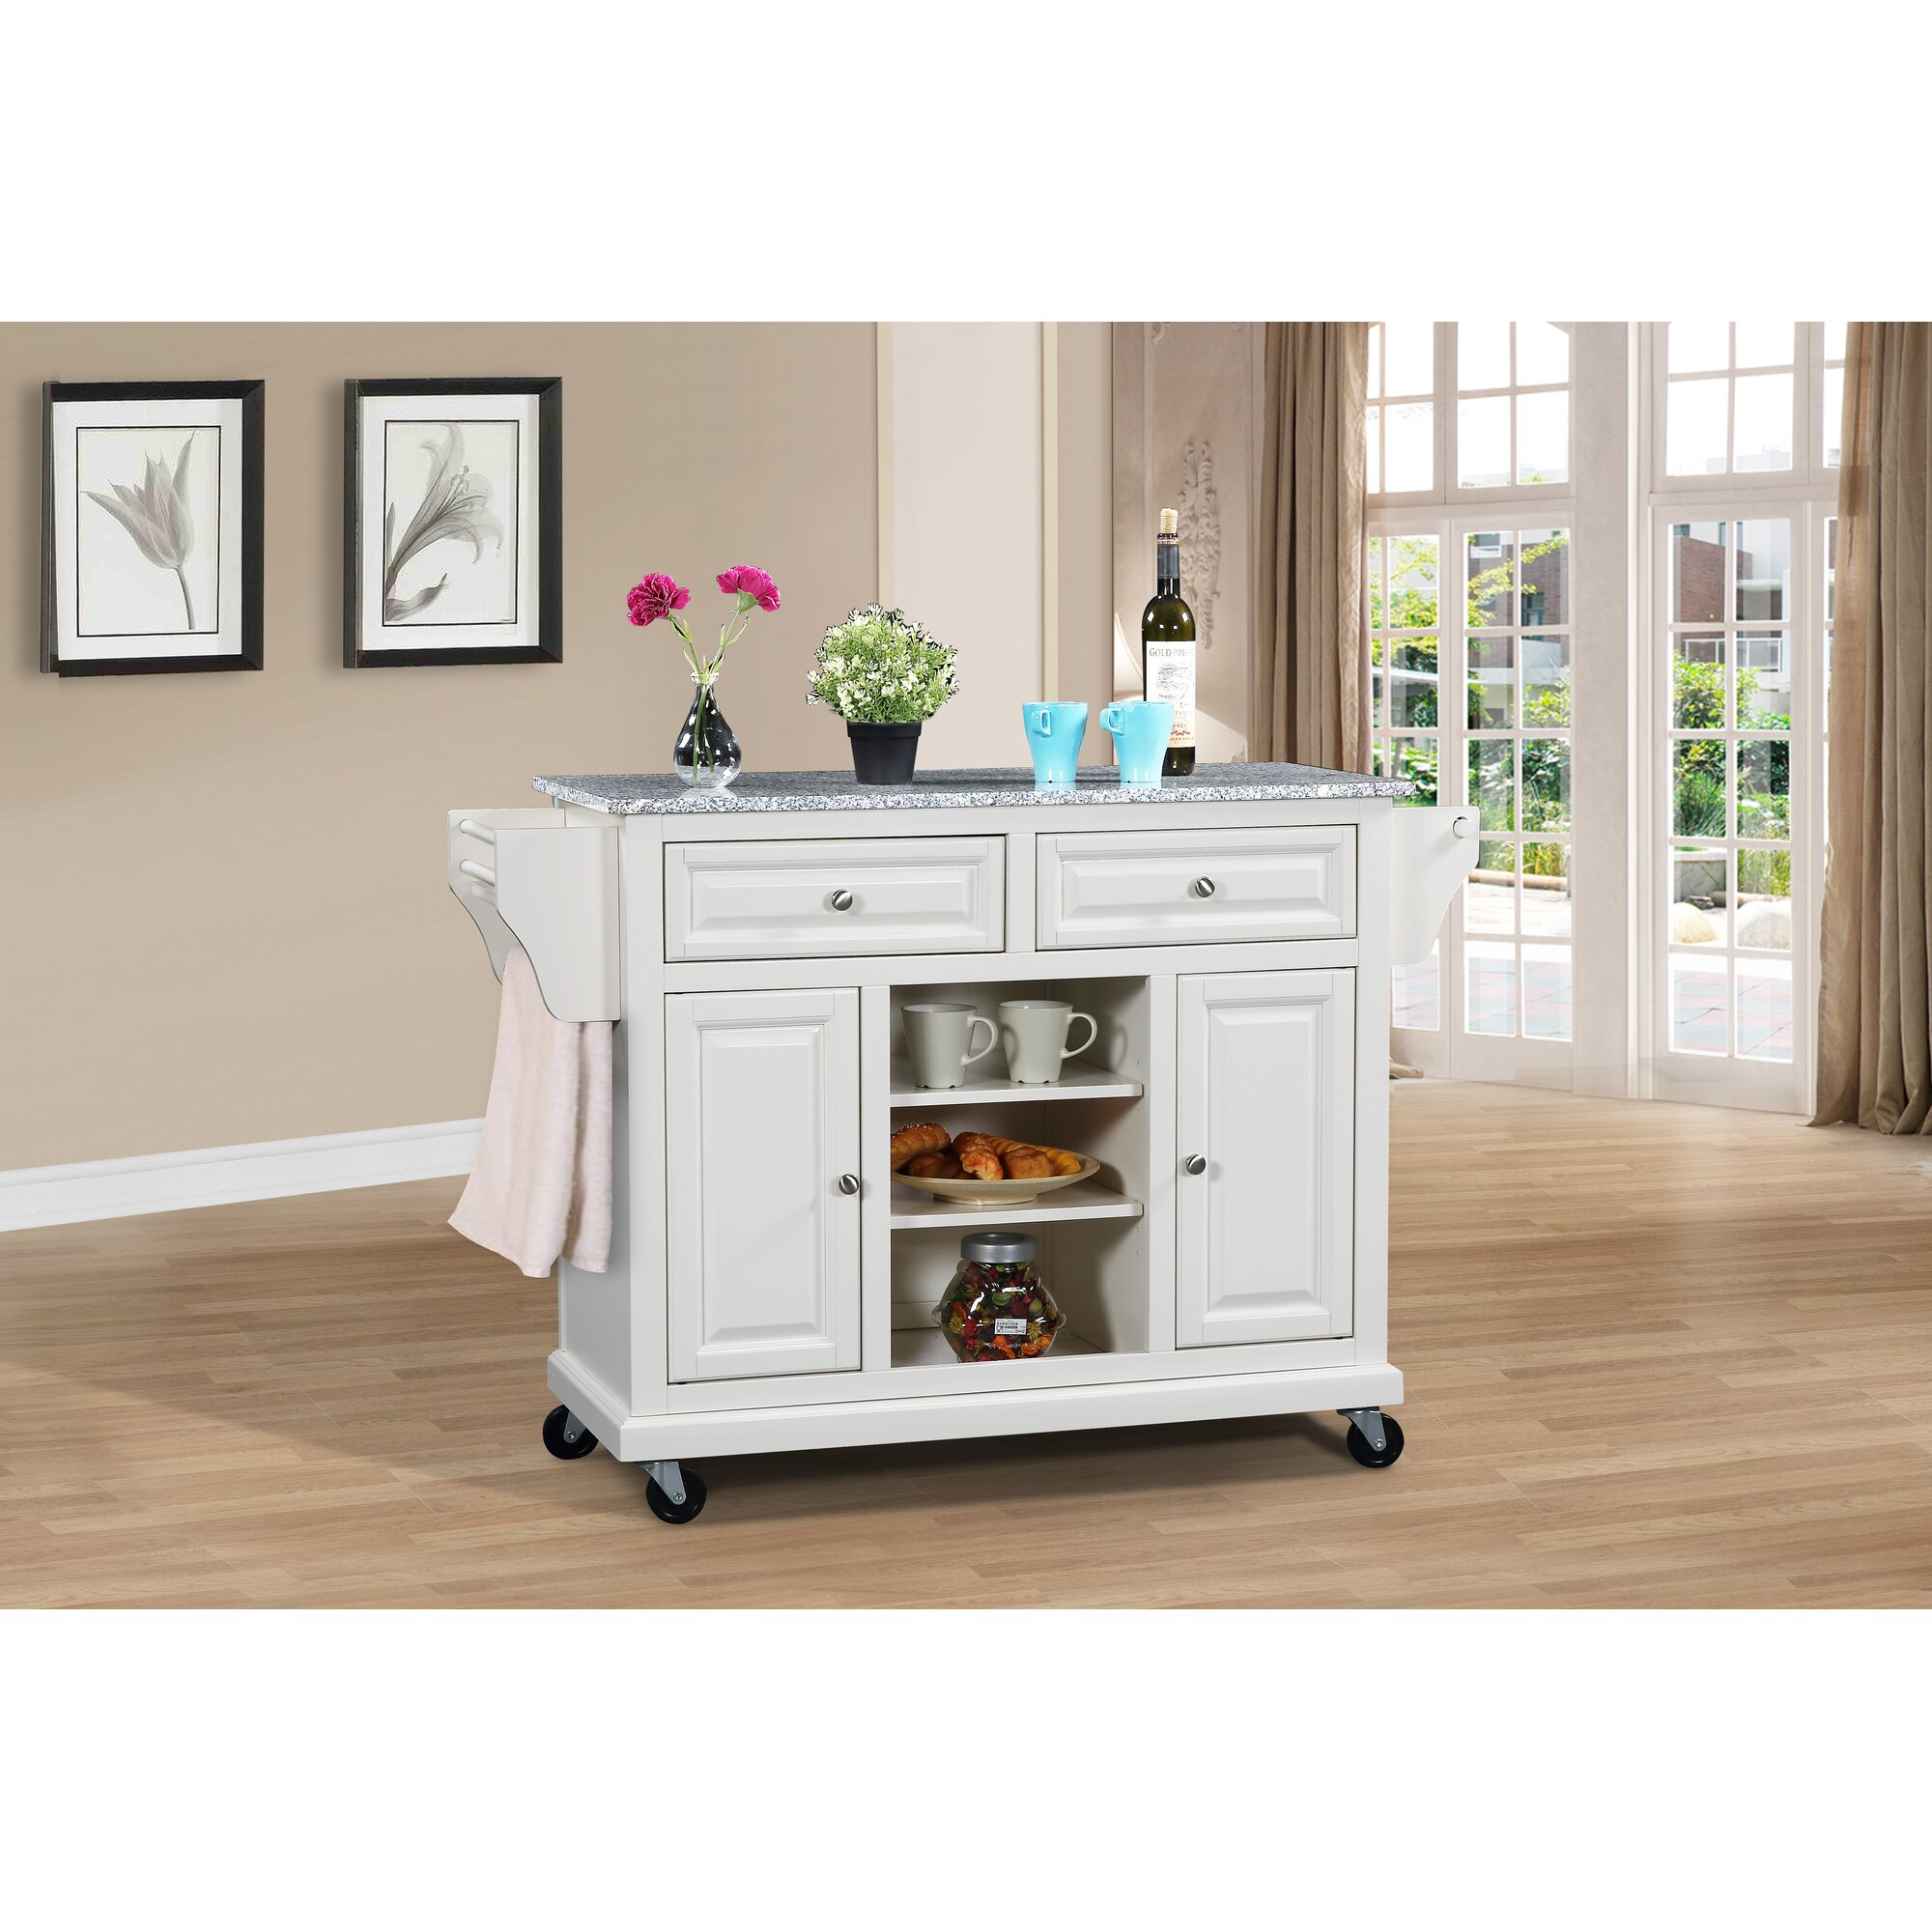 Kitchen Island With Granite Top: Wildon Home ® Kitchen Island With Granite Top & Reviews